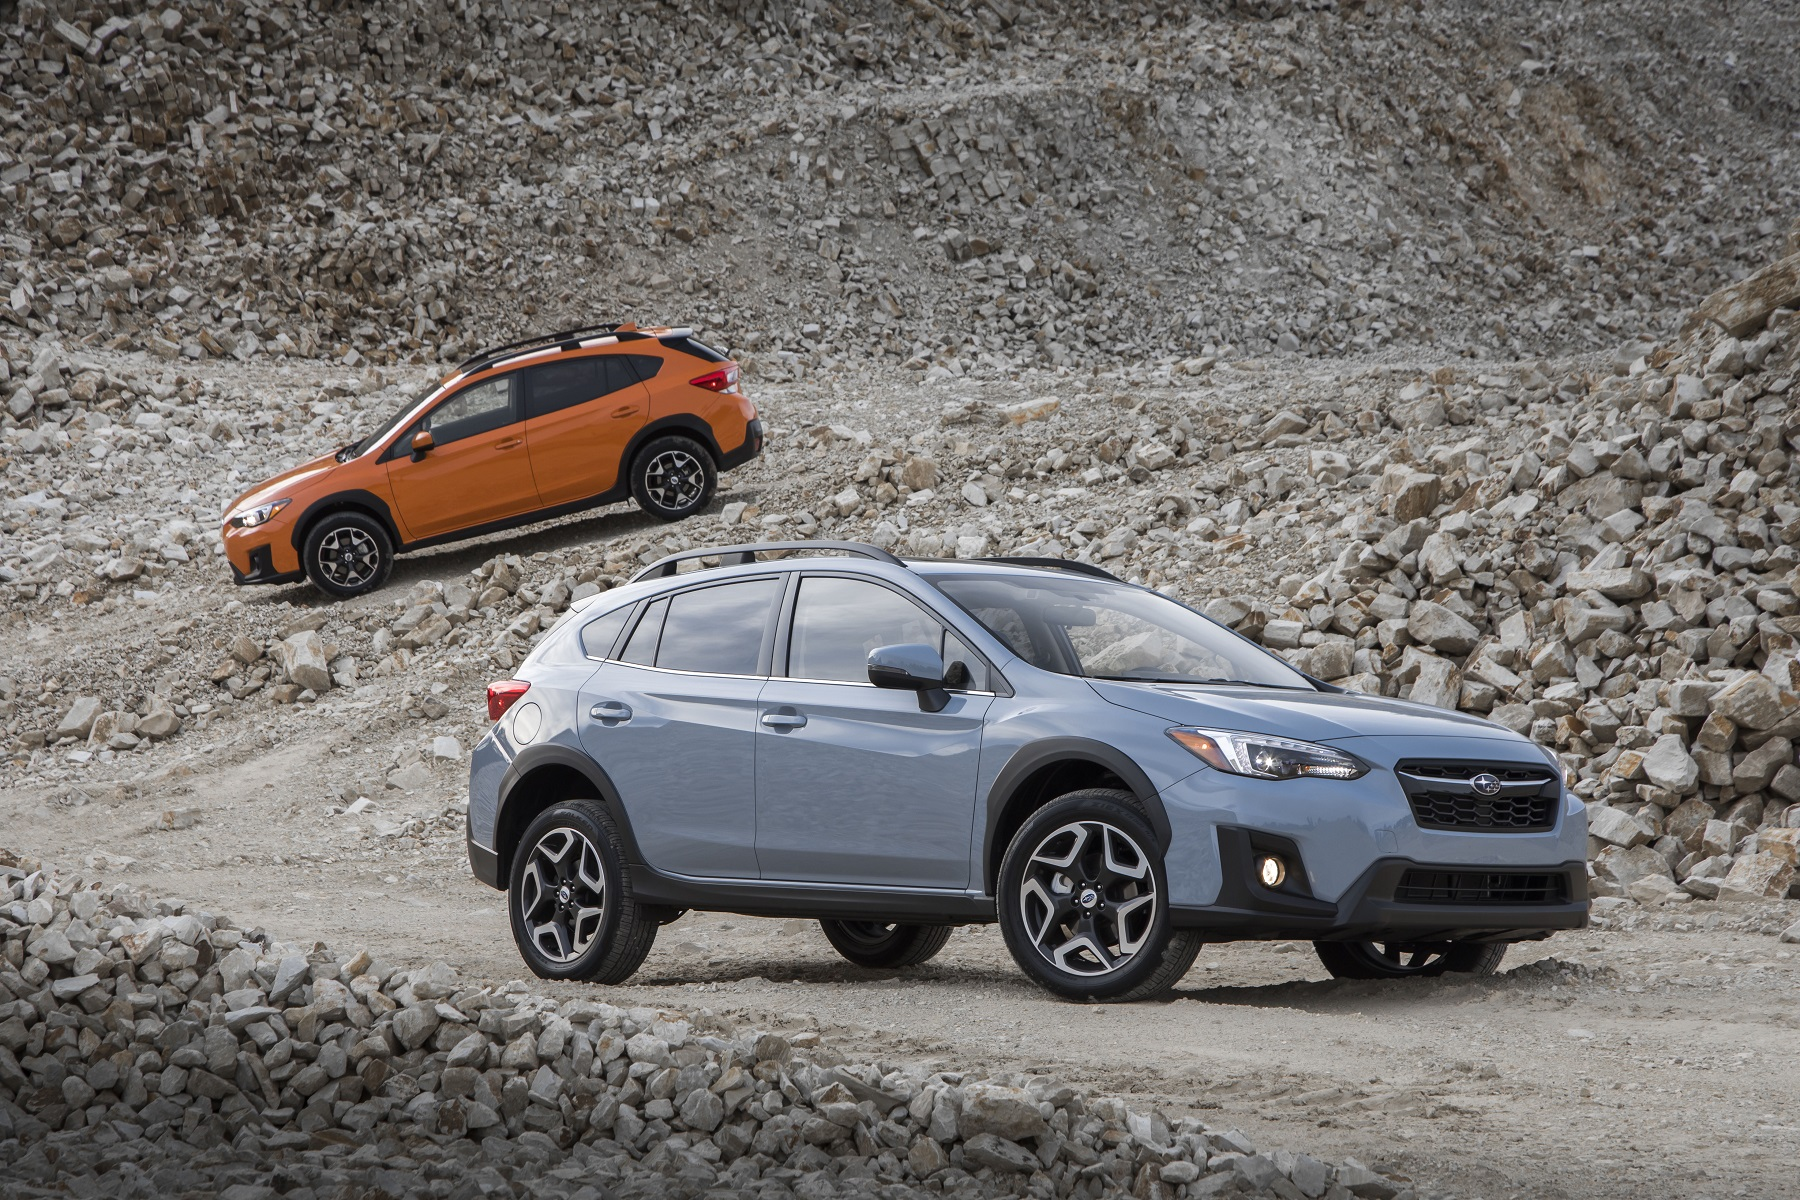 Manufacturer photo: The all-new 2018 Crosstrek offers enhanced performance, safety, capability and comfort